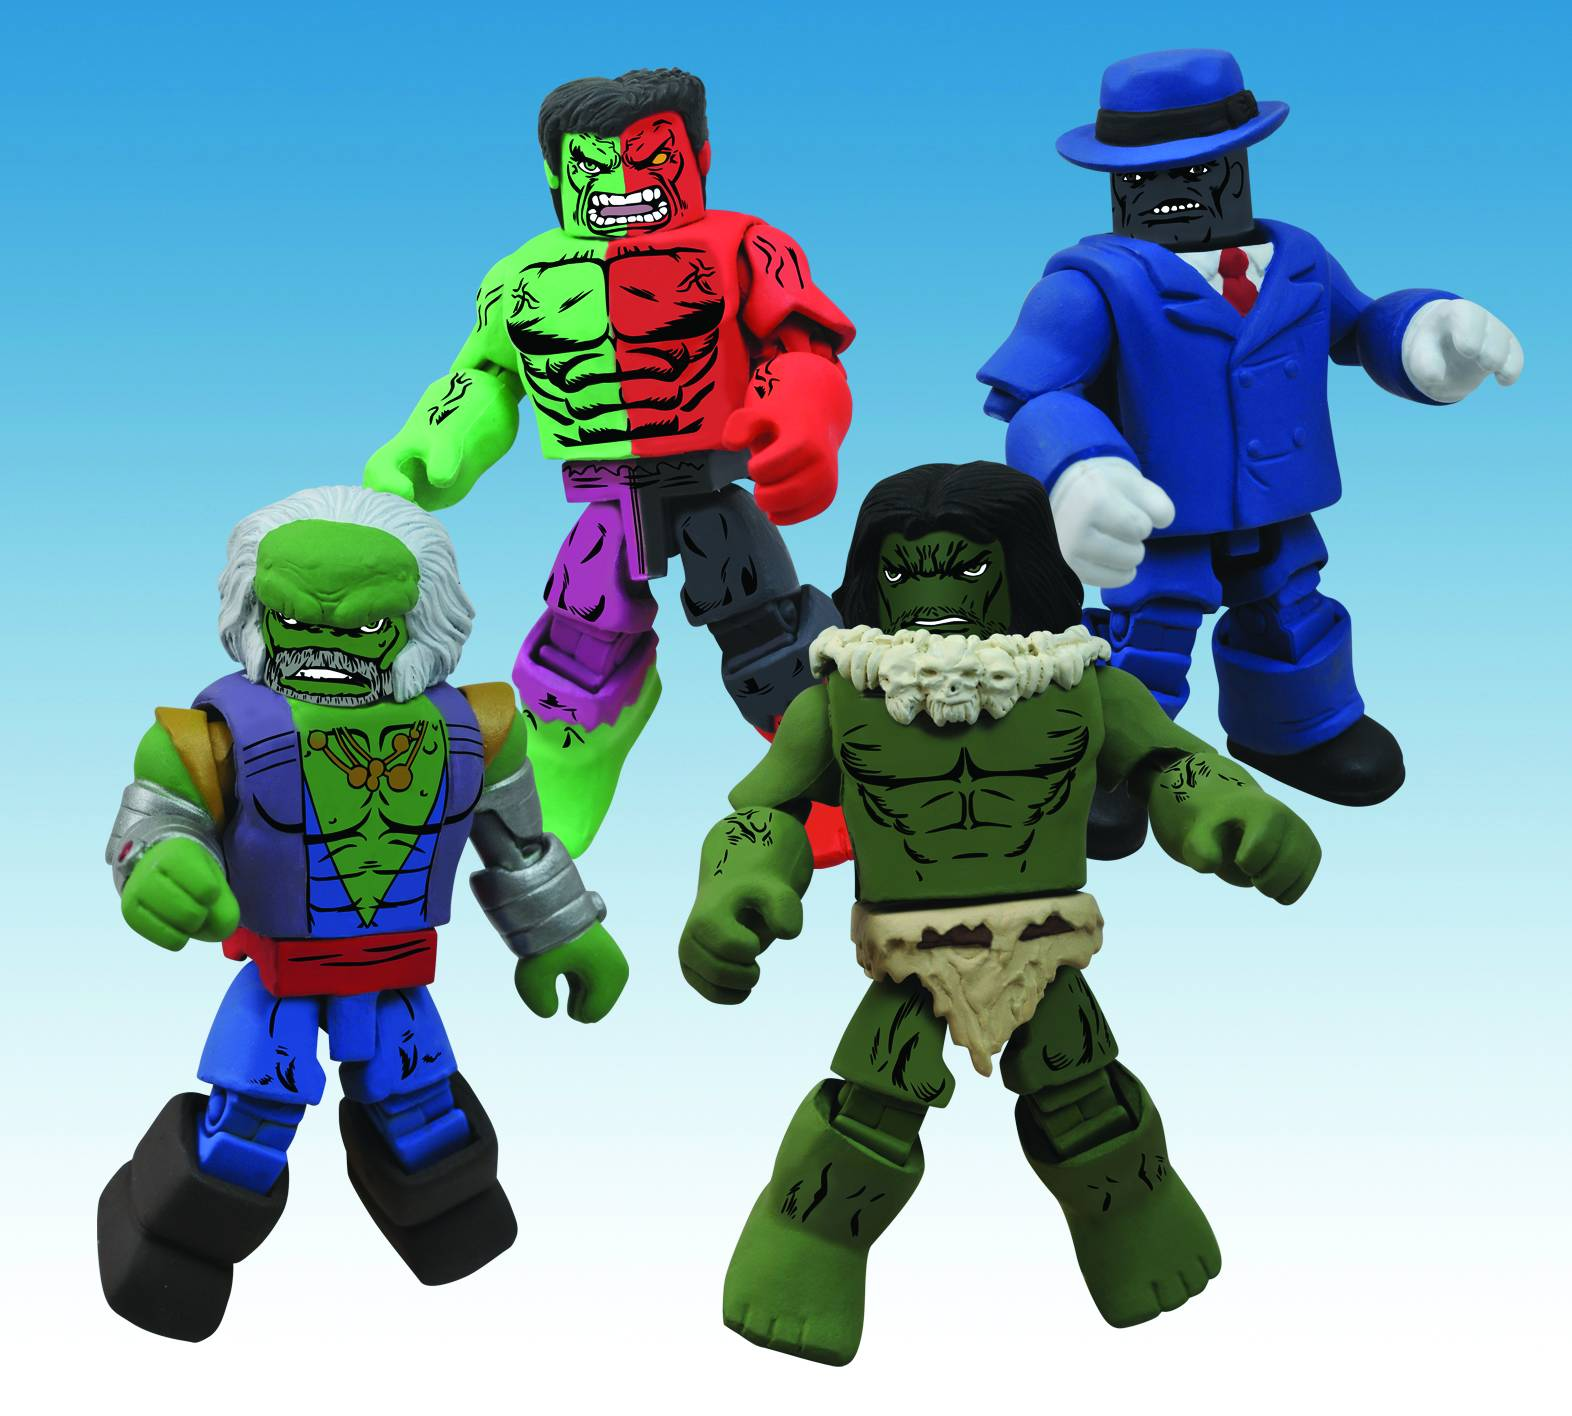 Minimates Hulk Through The Ages